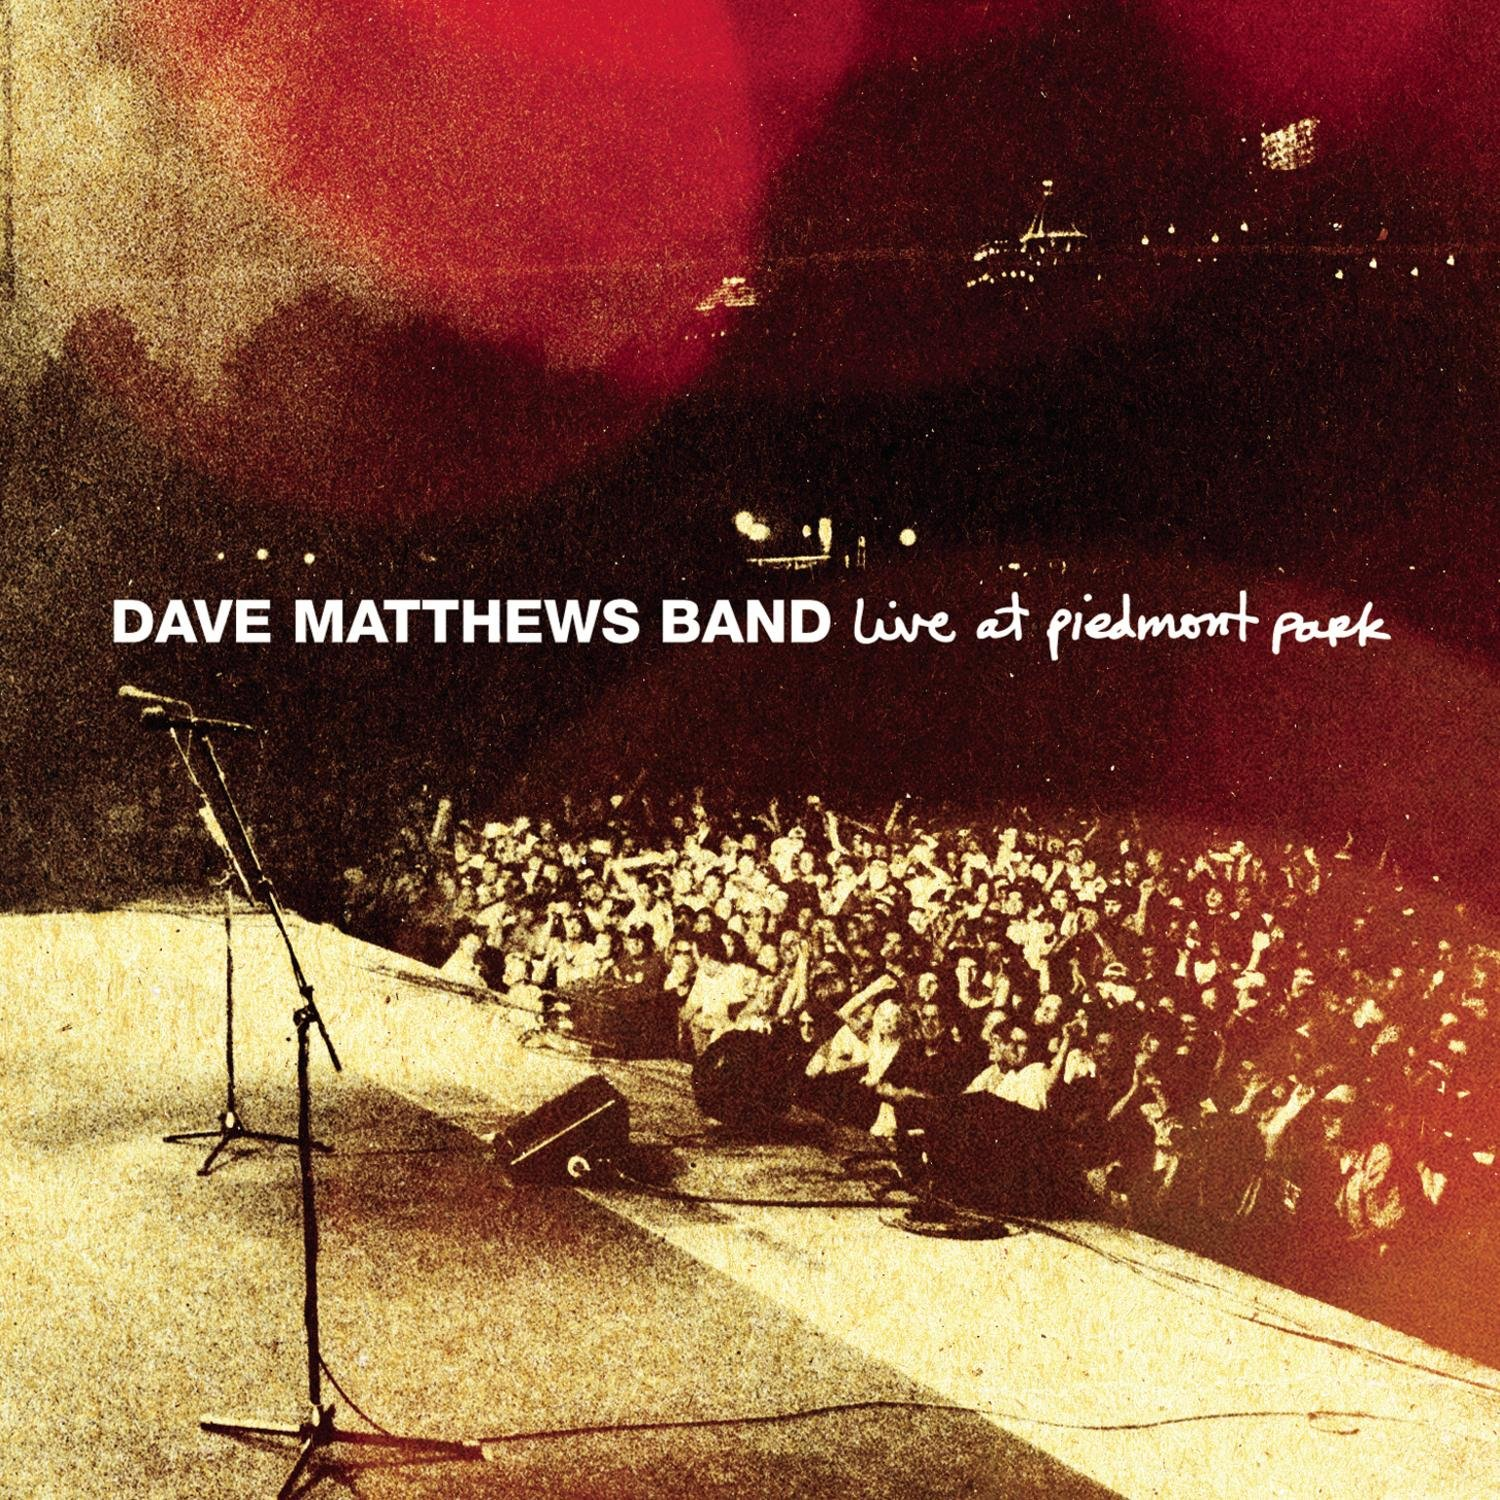 Live At Piedmont Park(3cd Set) by Sony Music Canada Inc.